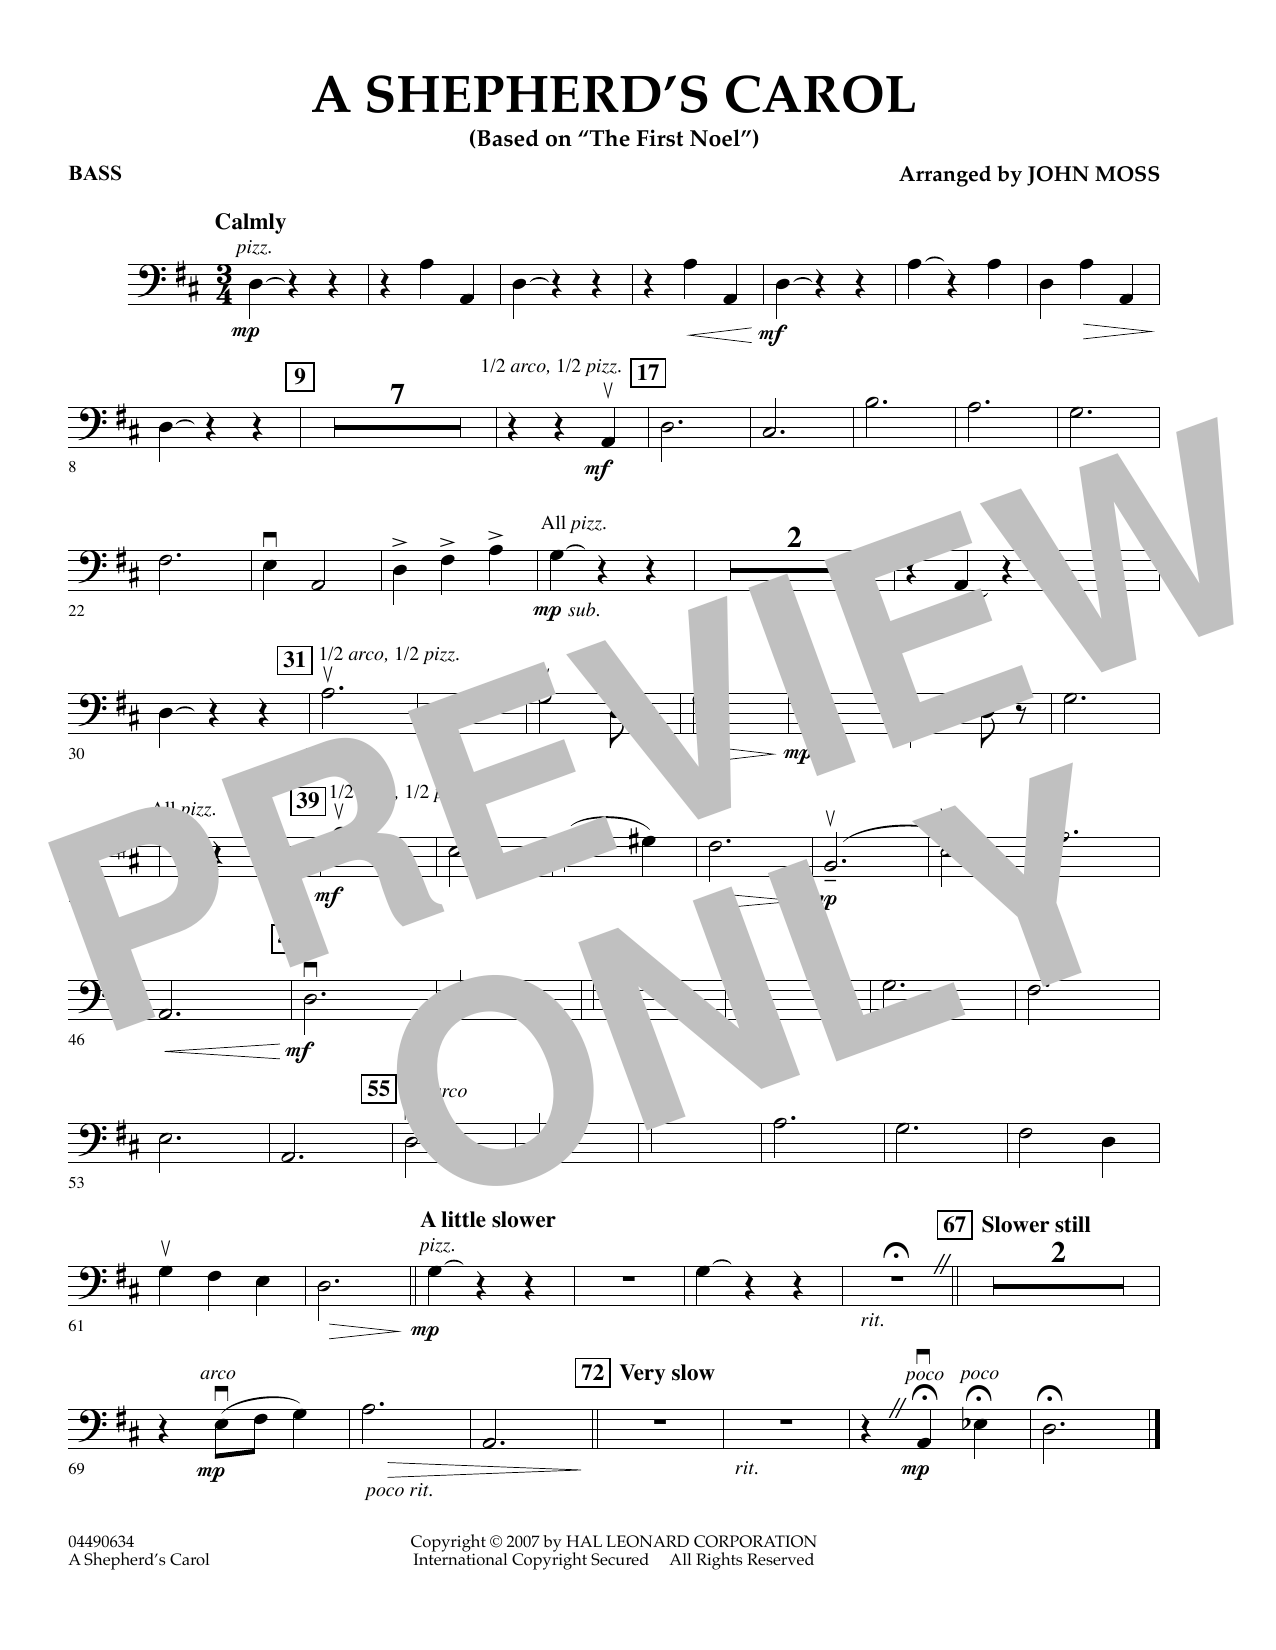 John Moss A Shepherd's Carol - String Bass sheet music notes and chords. Download Printable PDF.